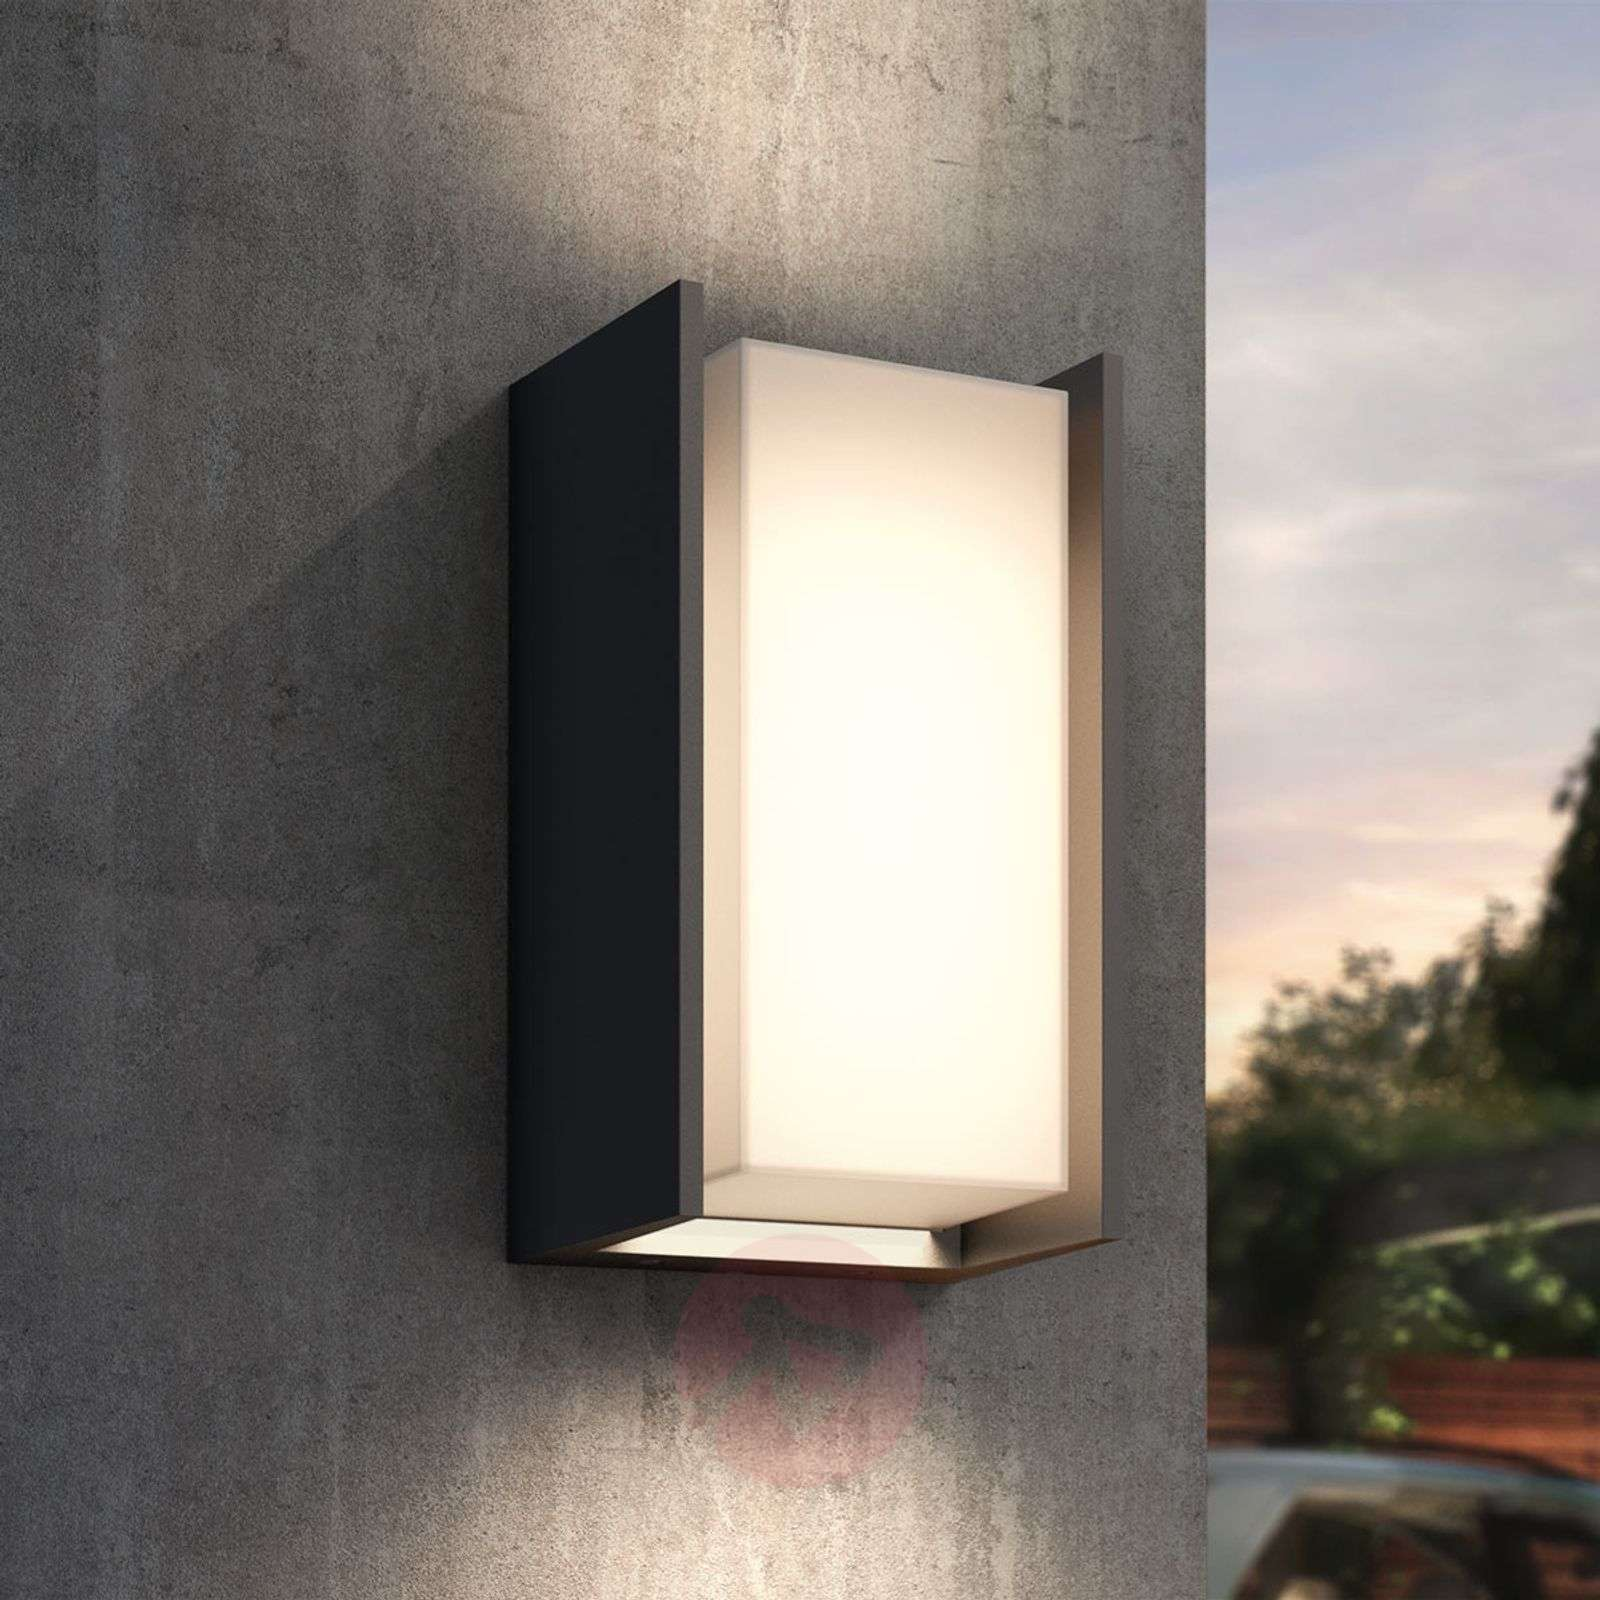 Philips Hue Turaco LED outdoor wall light | Lights.co.uk